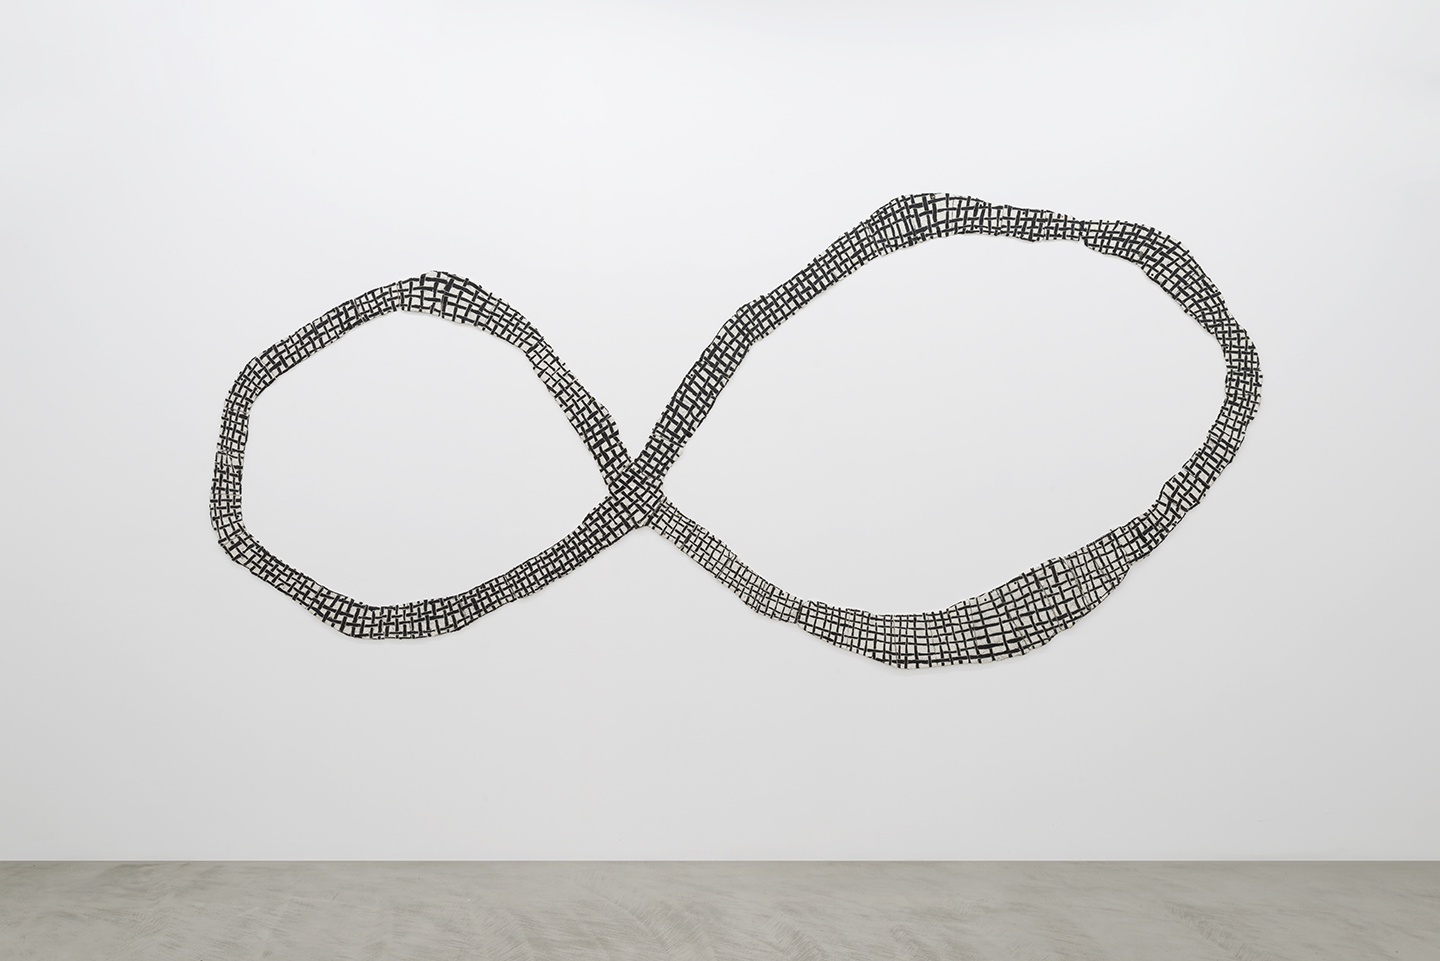 Julia Haft-Candell's Wall Infinity: Weave a large almost two-dimensional porcelain wall piece with black underglaze to create a criss-crossed effect